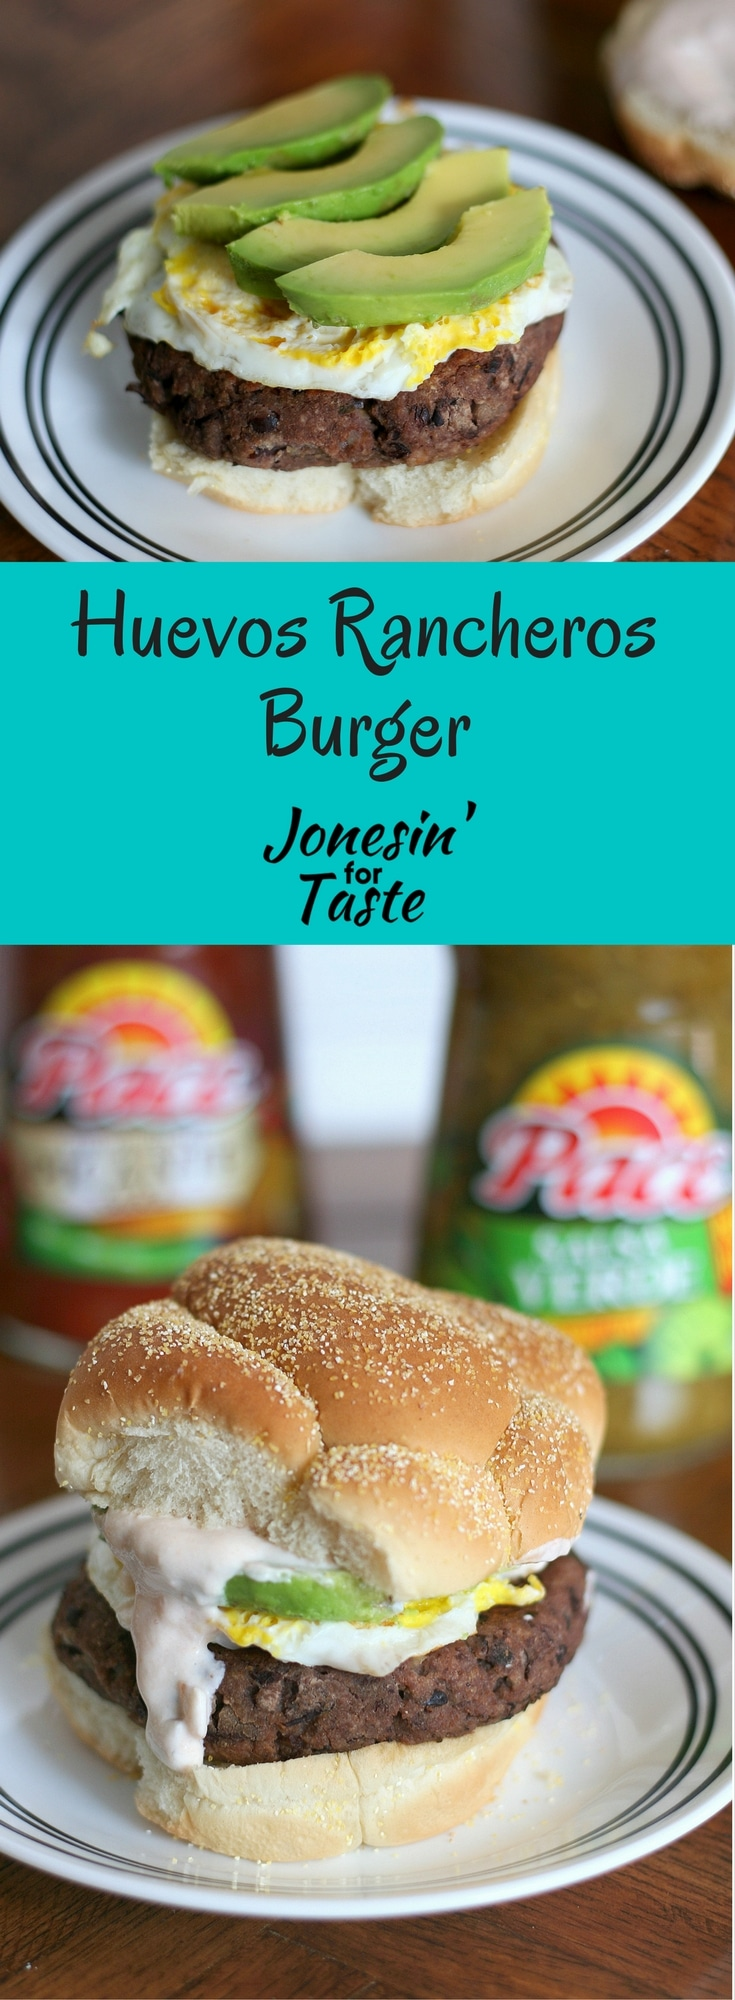 #ad Ban the Bland breakfast with Huevos Rancheros Burger, a meatless burger that mimics the flavors of the classic dish with a black bean burger and fried egg! #MakeGameTimeSaucy #CollectiveBias @Walmart